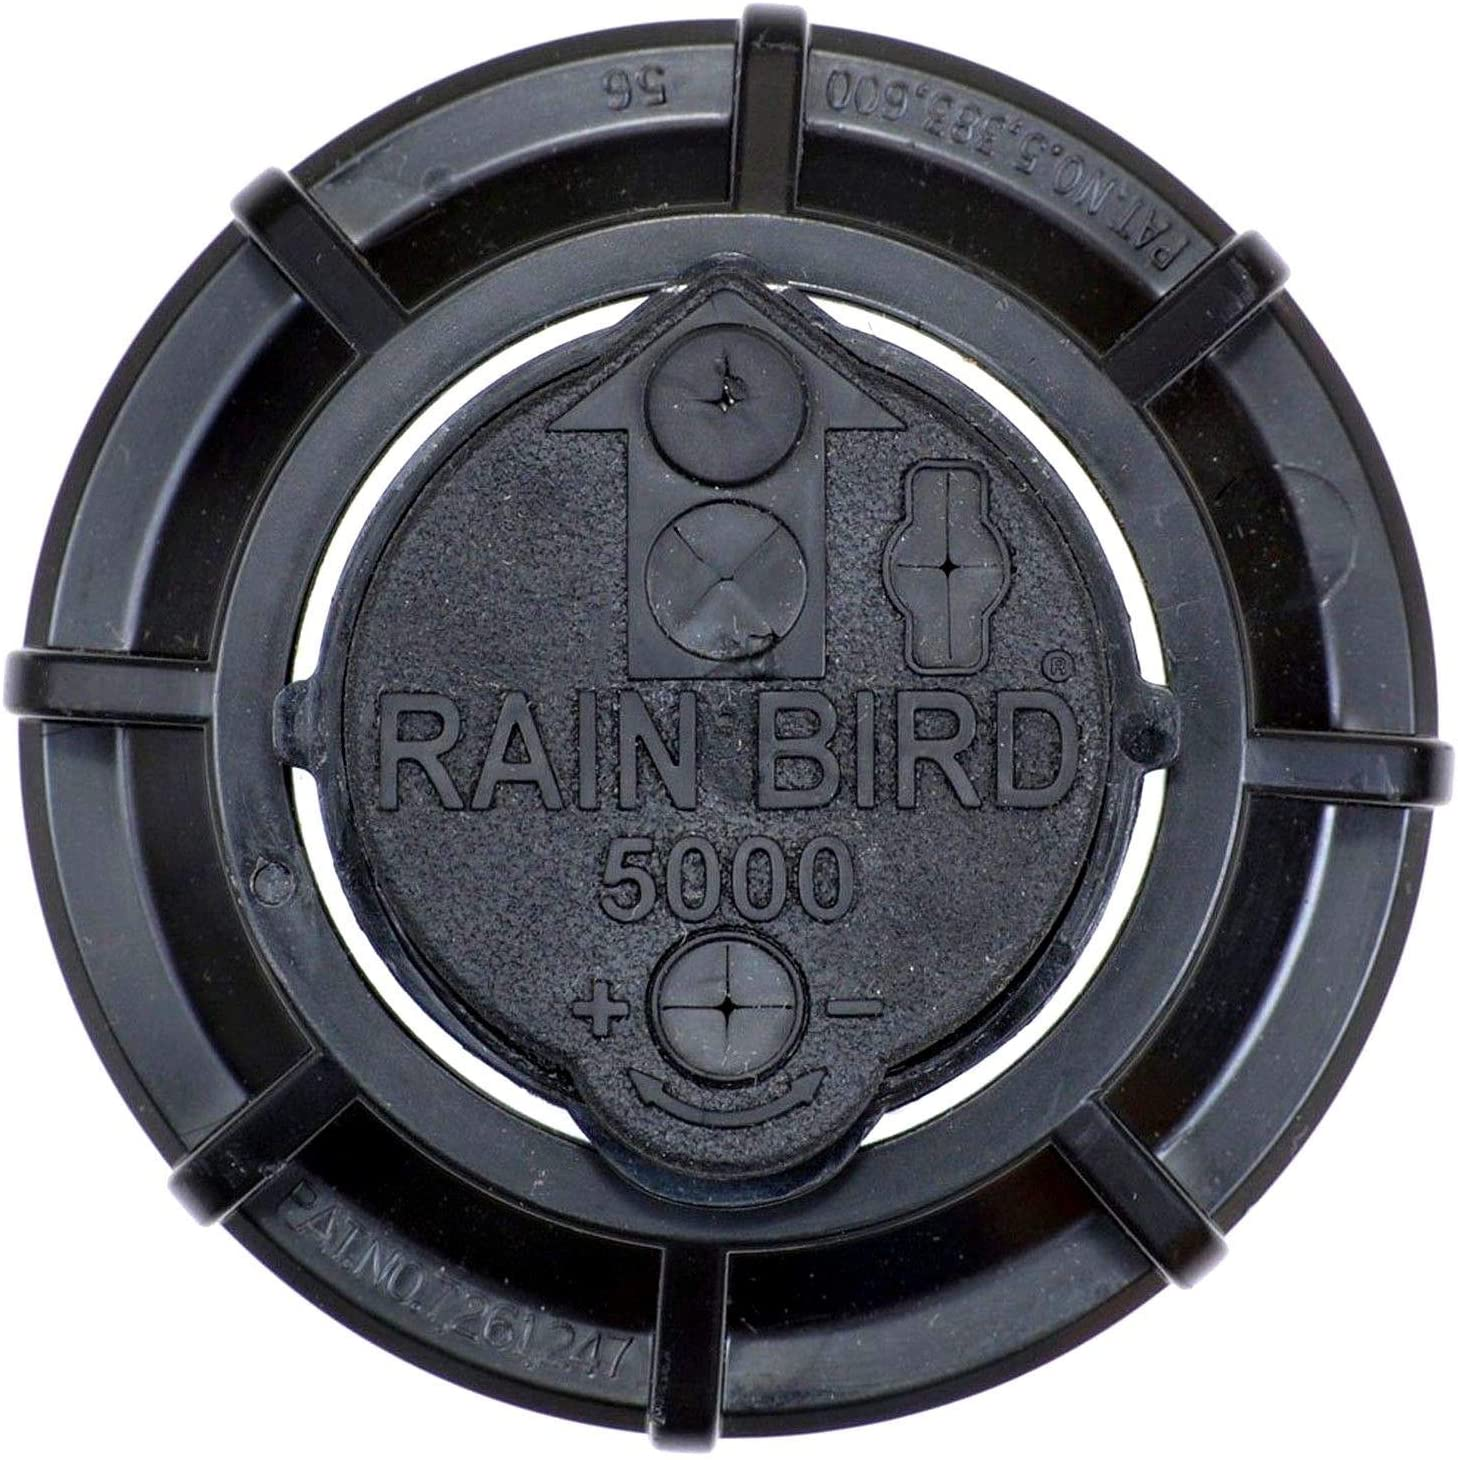 Rain-bird 5000 Series Rotor Sprinkler Head – 5004 PC Model, Adjustable 40-360 Degree Part-Circle, 4 Inch Pop-Up Lawn Sprayer Irrigation System – 25 to 50 Feet Water Spray Distance Y54007 2 Pack